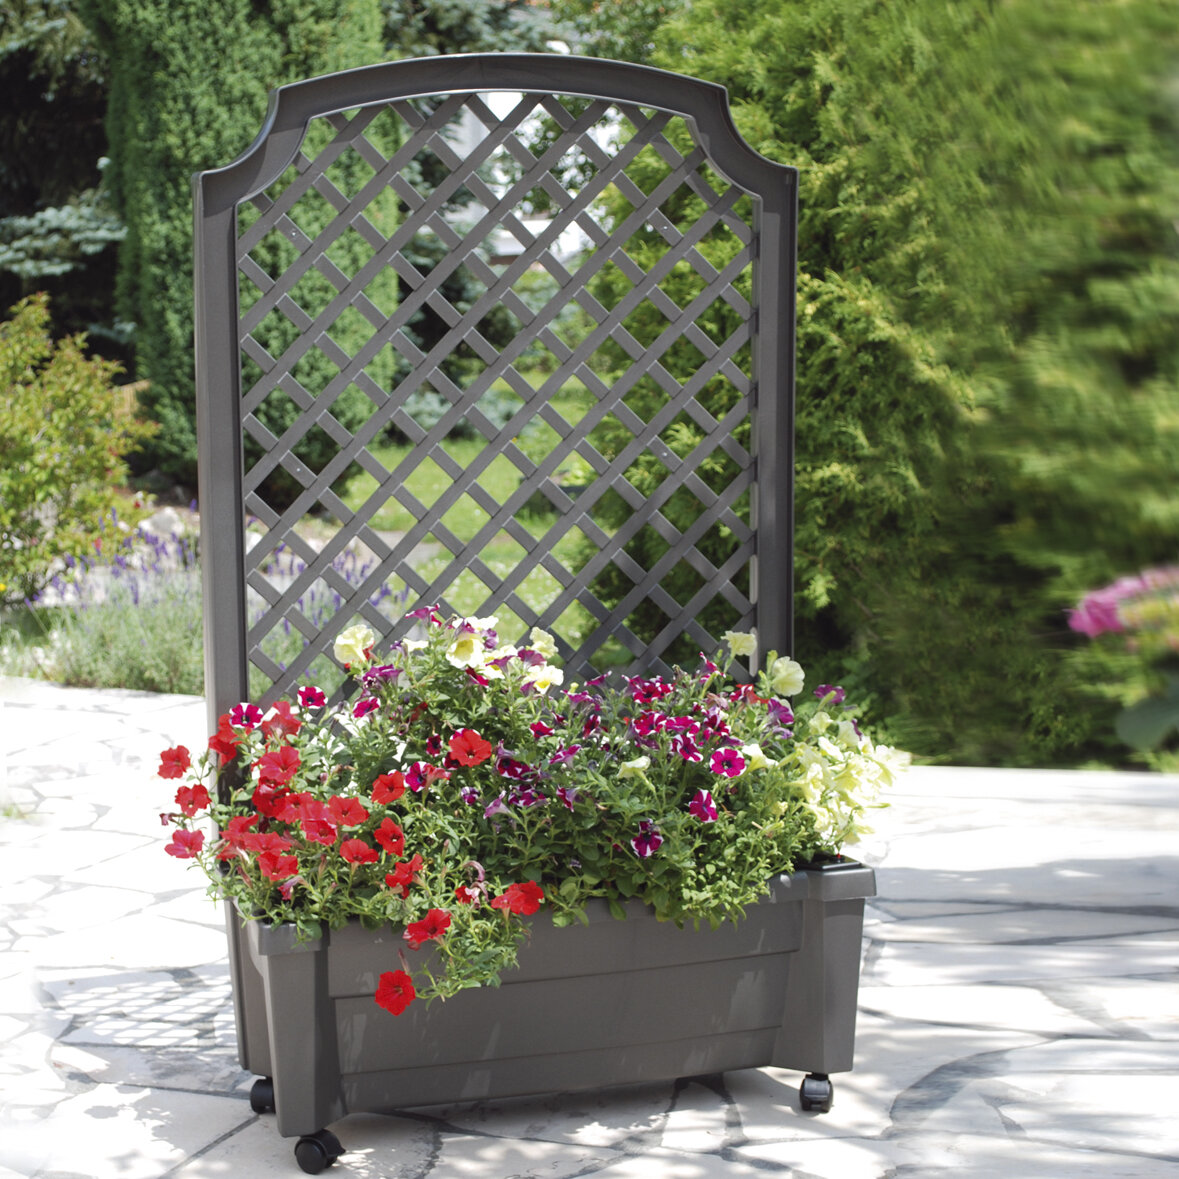 Khw Plastic Self Watering Planter Box With Trellis Reviews